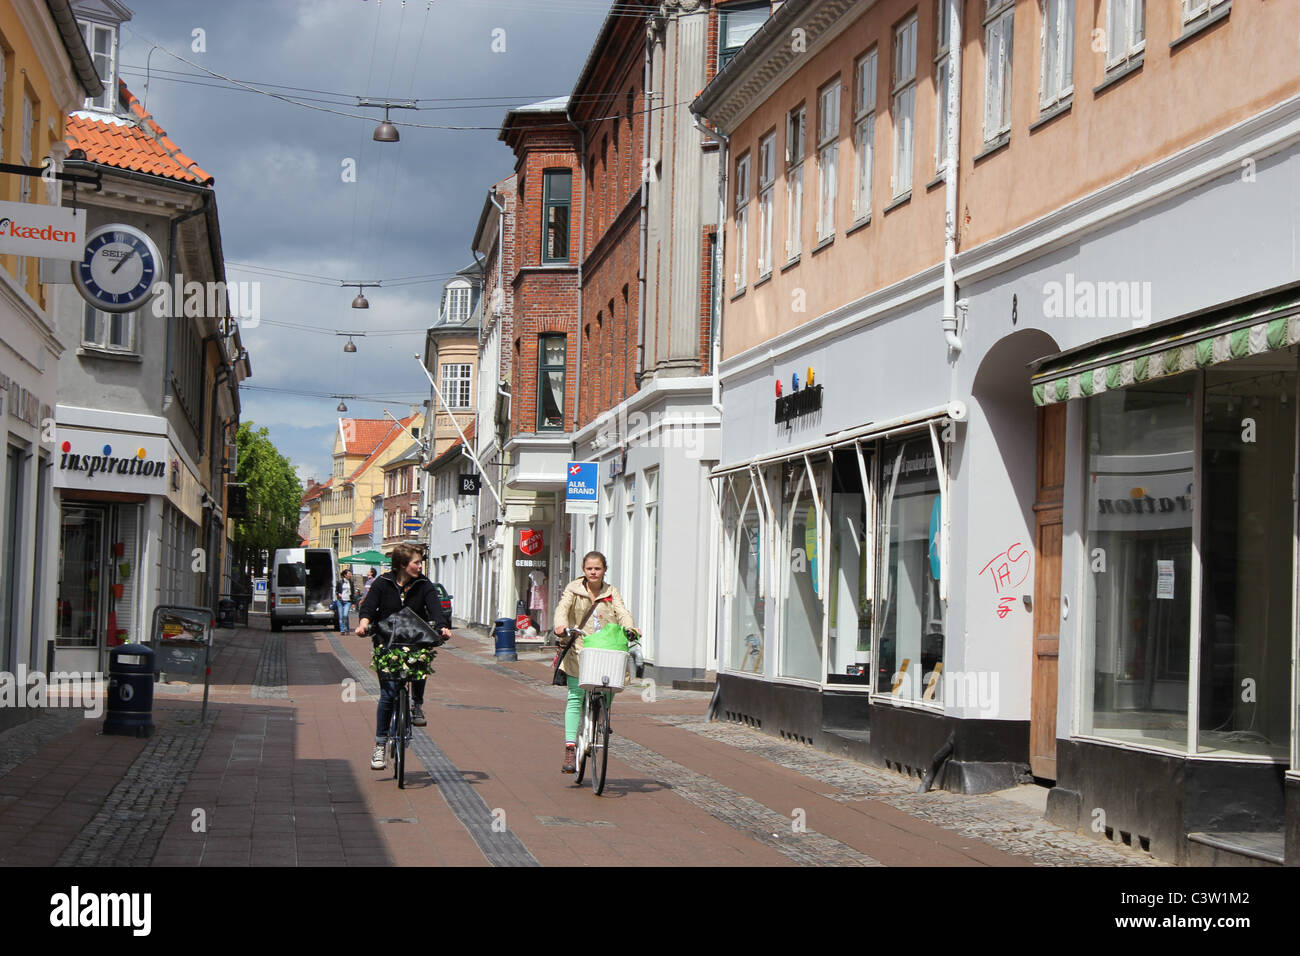 Two women biking down town Helsingør, Denmark - Stock Image